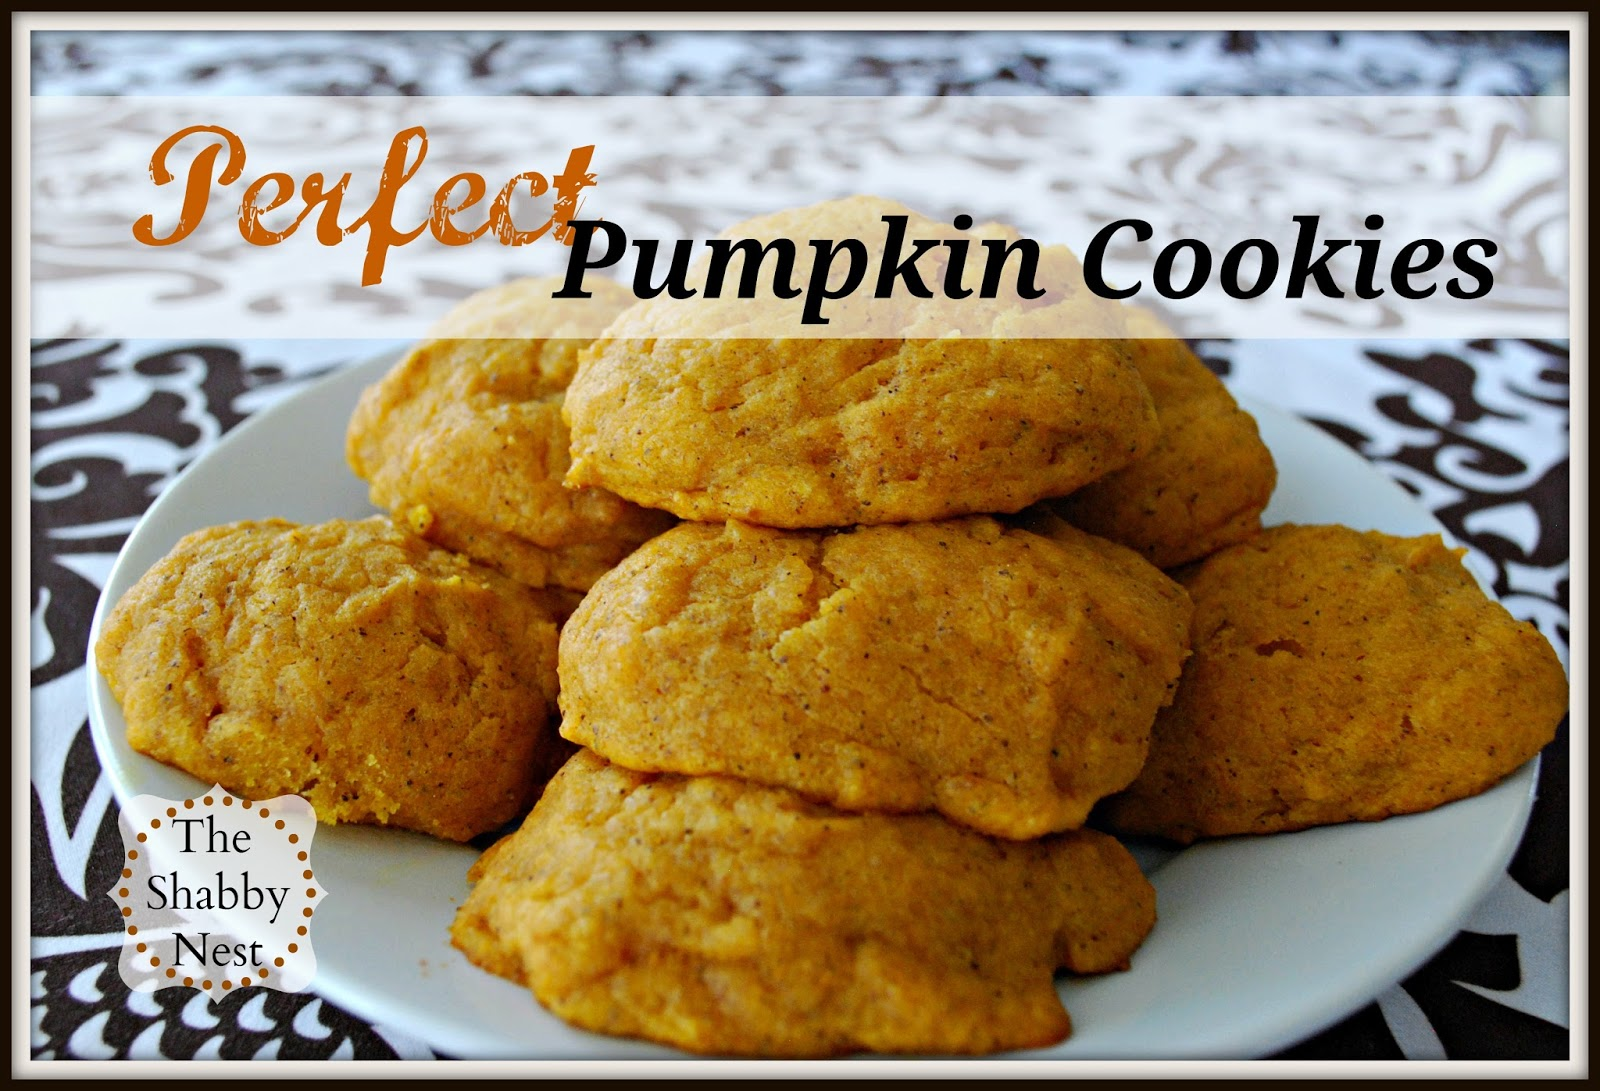 ... my favorite fall recipes: Amazing, Melt-in-your-mouth Pumpkin Cookies